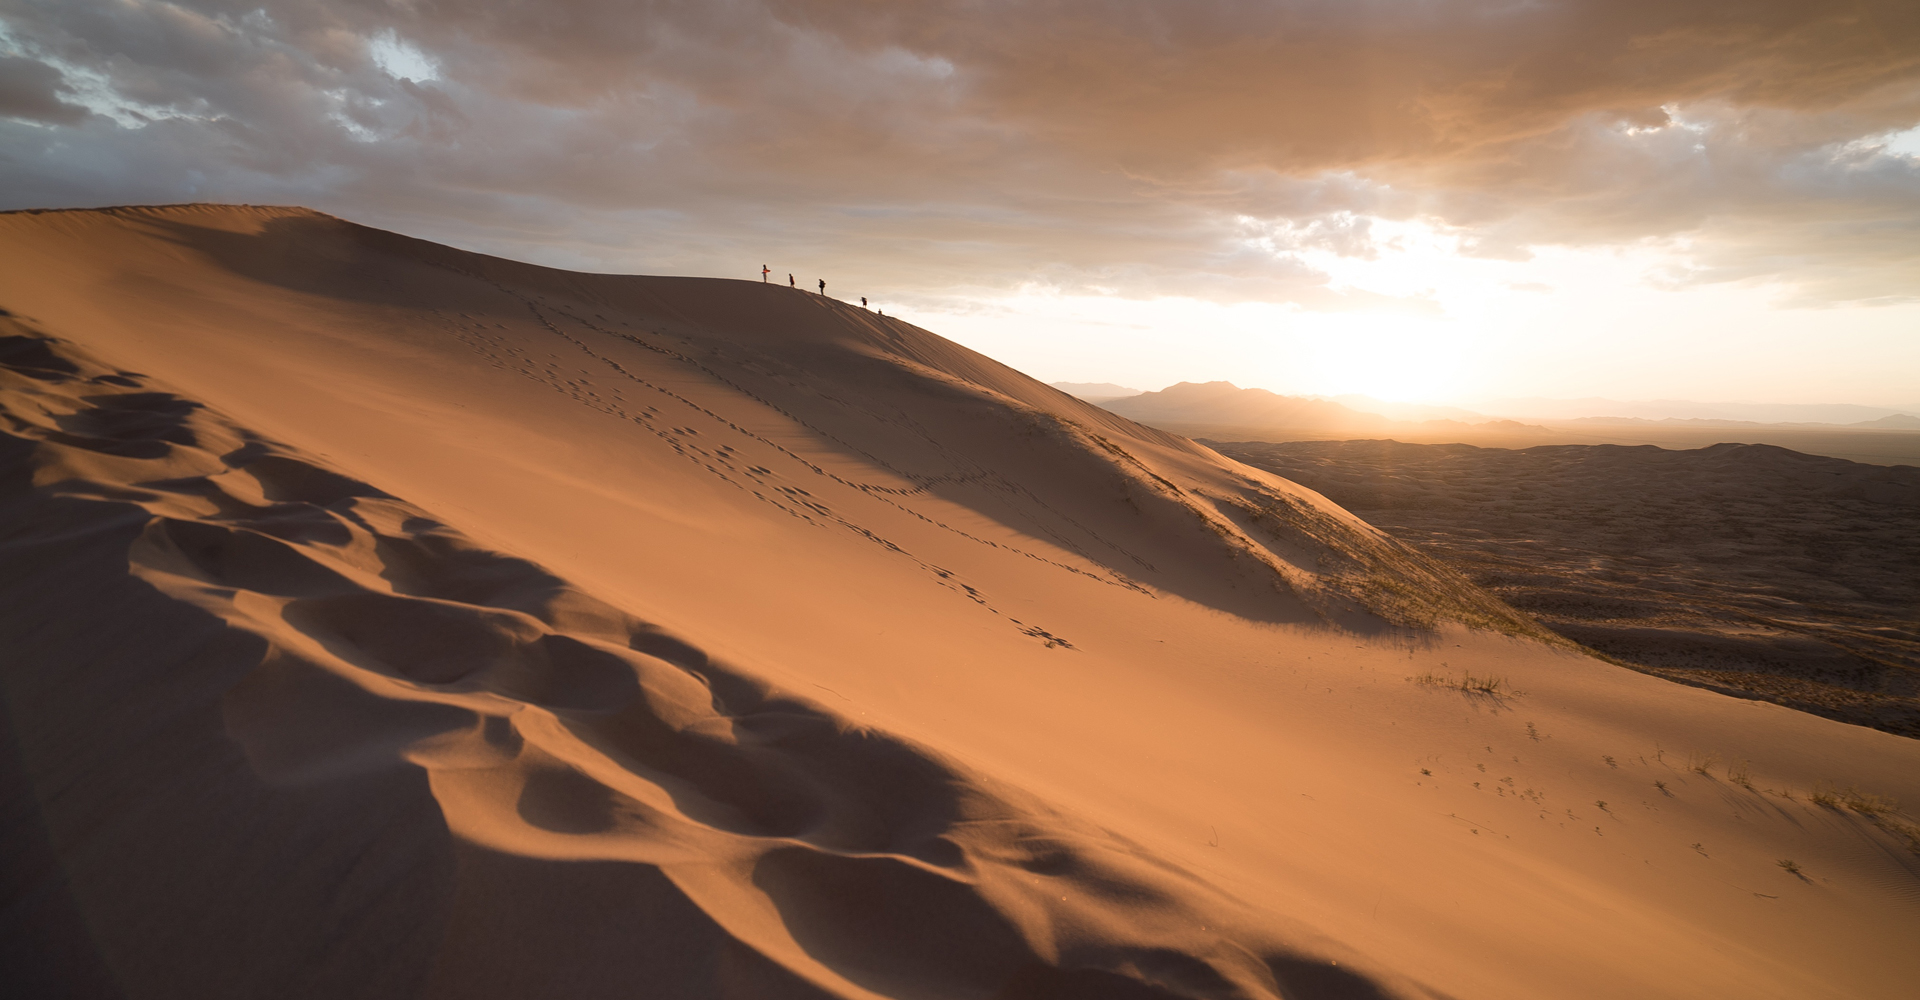 a vast desert landscape at twilight with only a few travelers and their tracks